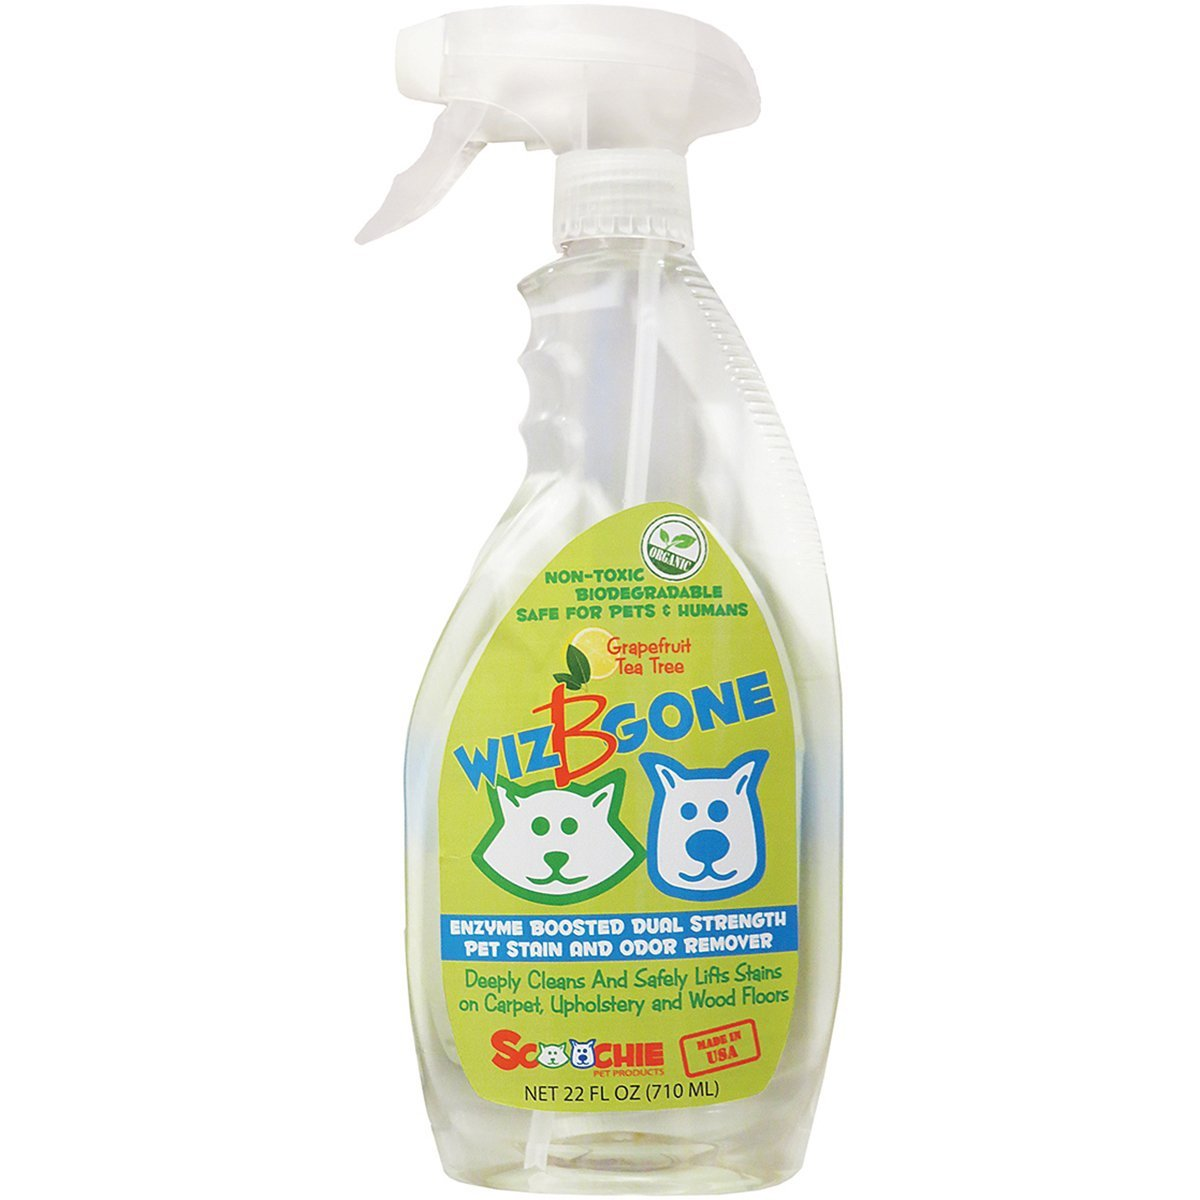 22 Ounces or 1 Gallon - Pet stain and odor remover | Wizbgone | Dogs and cats stains removal